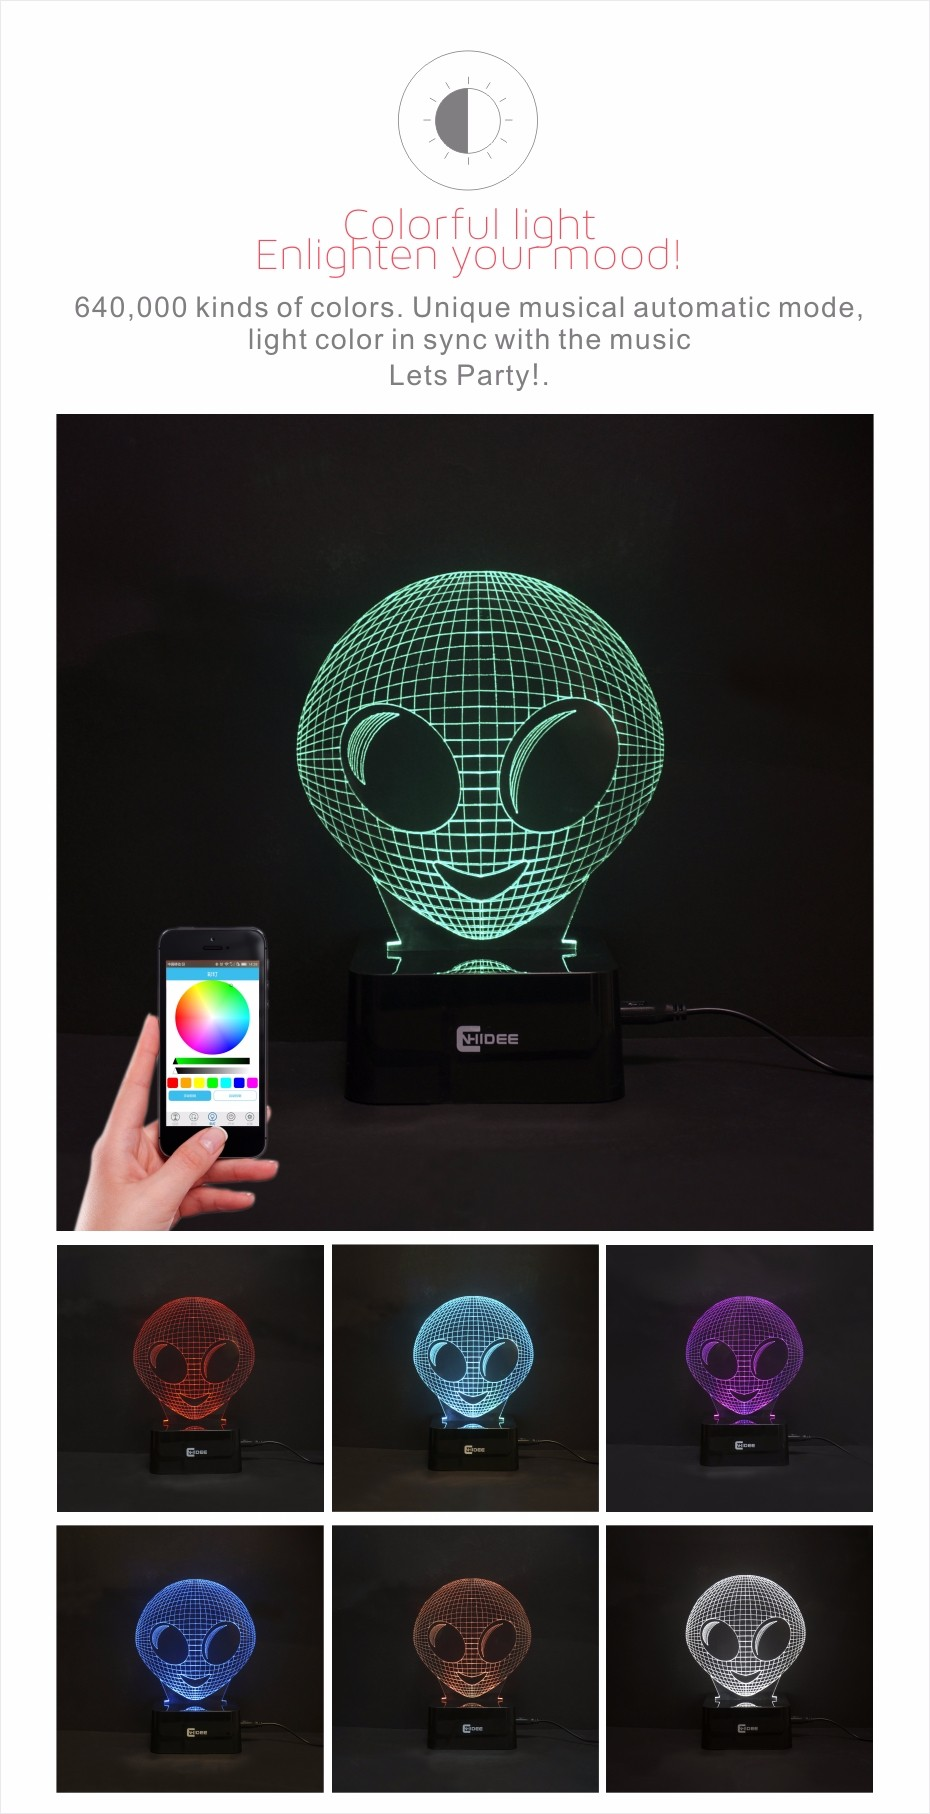 Alien 3d Visual Night Lights Bluetooth Smart Music Lamp Phone App Controlled Home Decor USB Table Desk Nightlights as Xams Gift  (2)